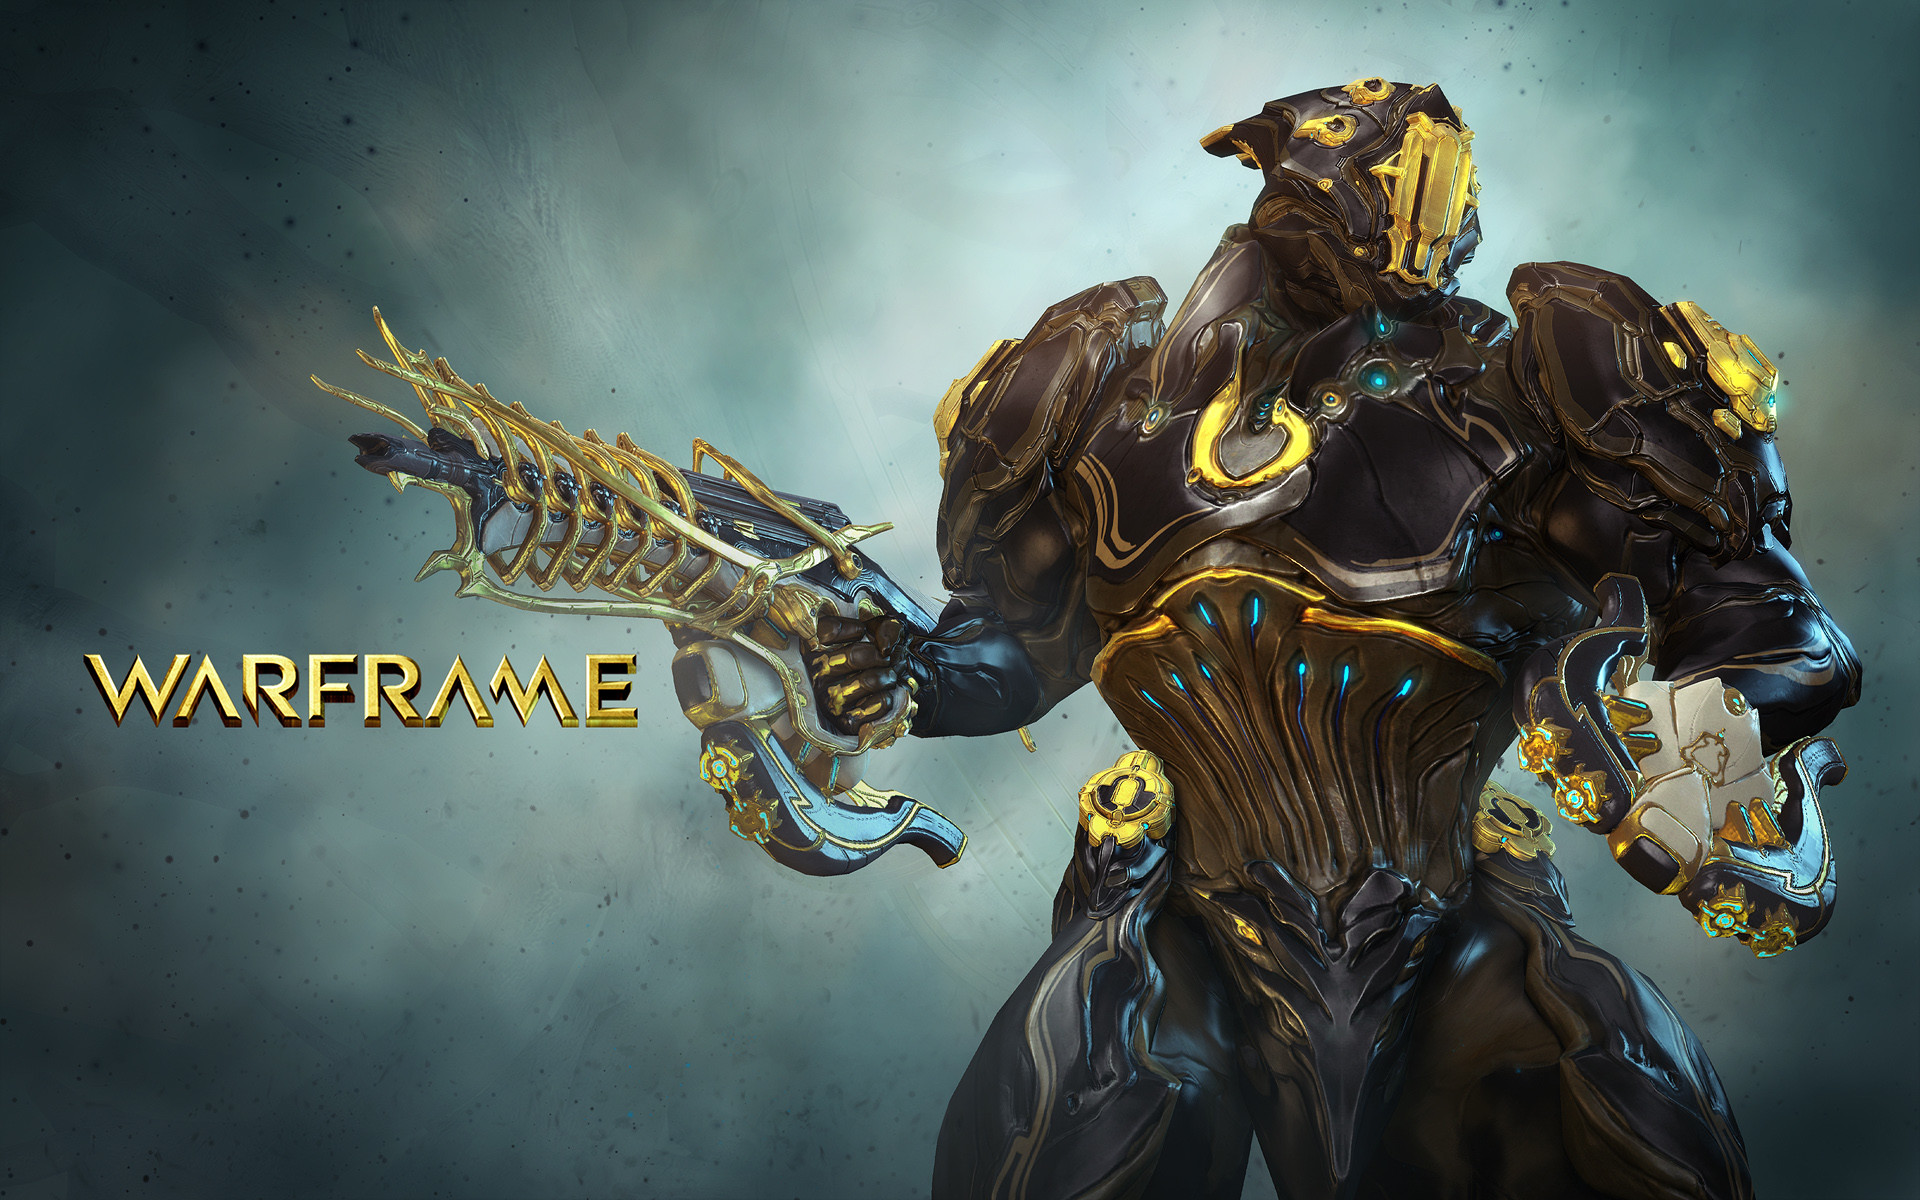 Huge update coming to Warframe starting today   PlayStation Nation